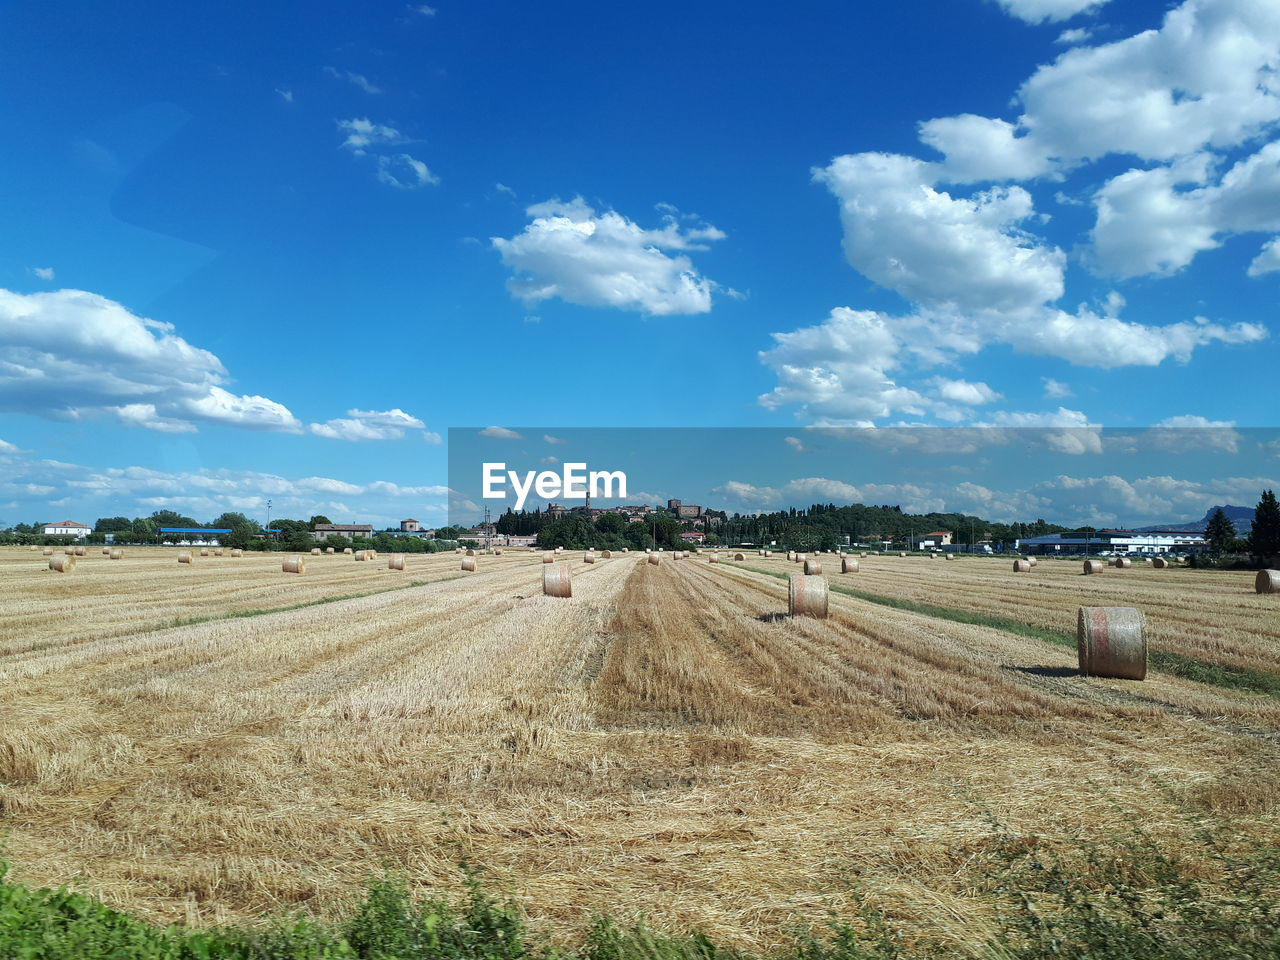 field, agriculture, landscape, tranquil scene, rural scene, tranquility, sky, bale, cloud - sky, day, nature, beauty in nature, blue, outdoors, scenics, no people, hay bale, grass, tree